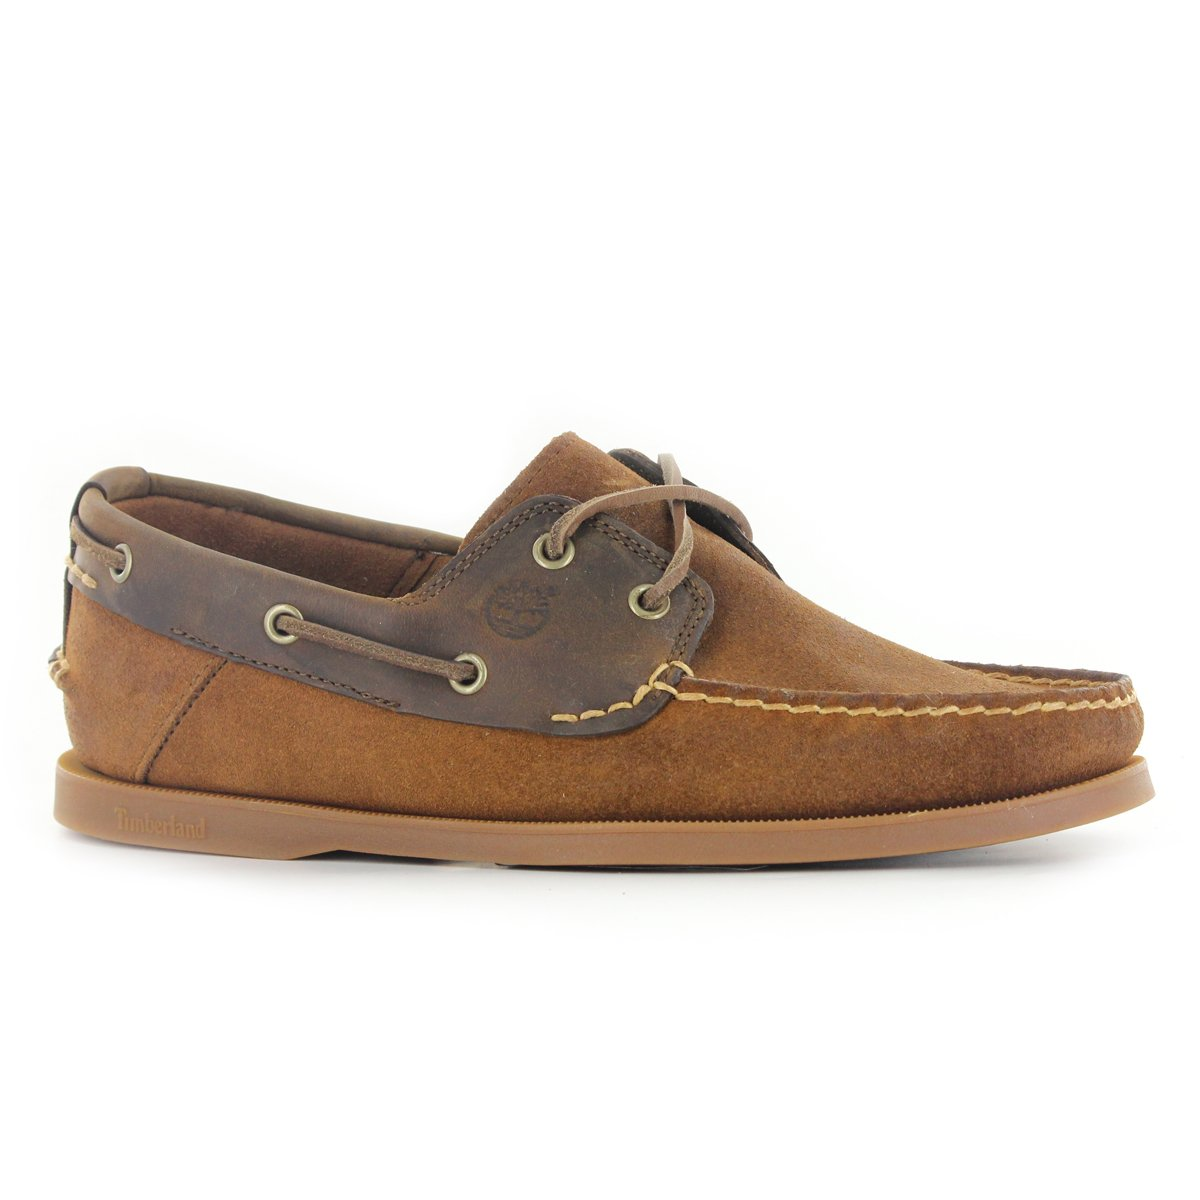 Timberland EK 6469R Heritage Leather Brown Mens Boat Shoes Size 10 UK   Amazon.co.uk  Shoes   Bags af73c9ae4